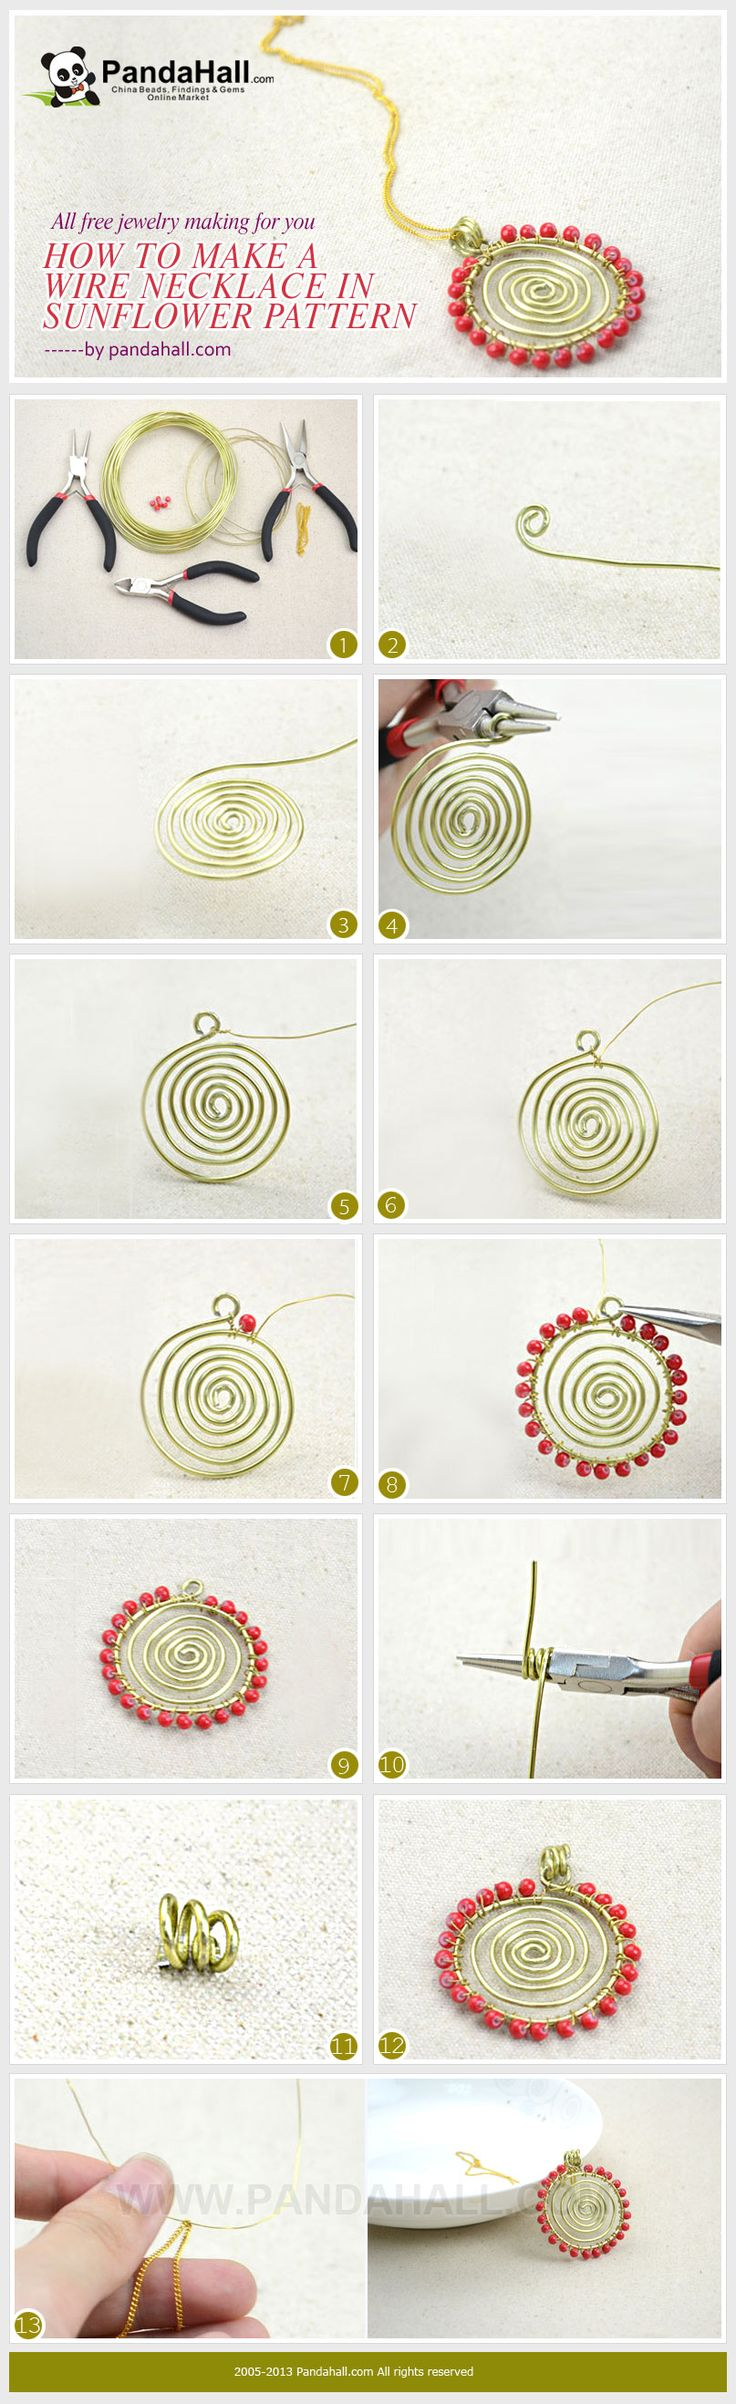 259 best Wire images on Pinterest | Diy jewelry, Earrings and Wire ...